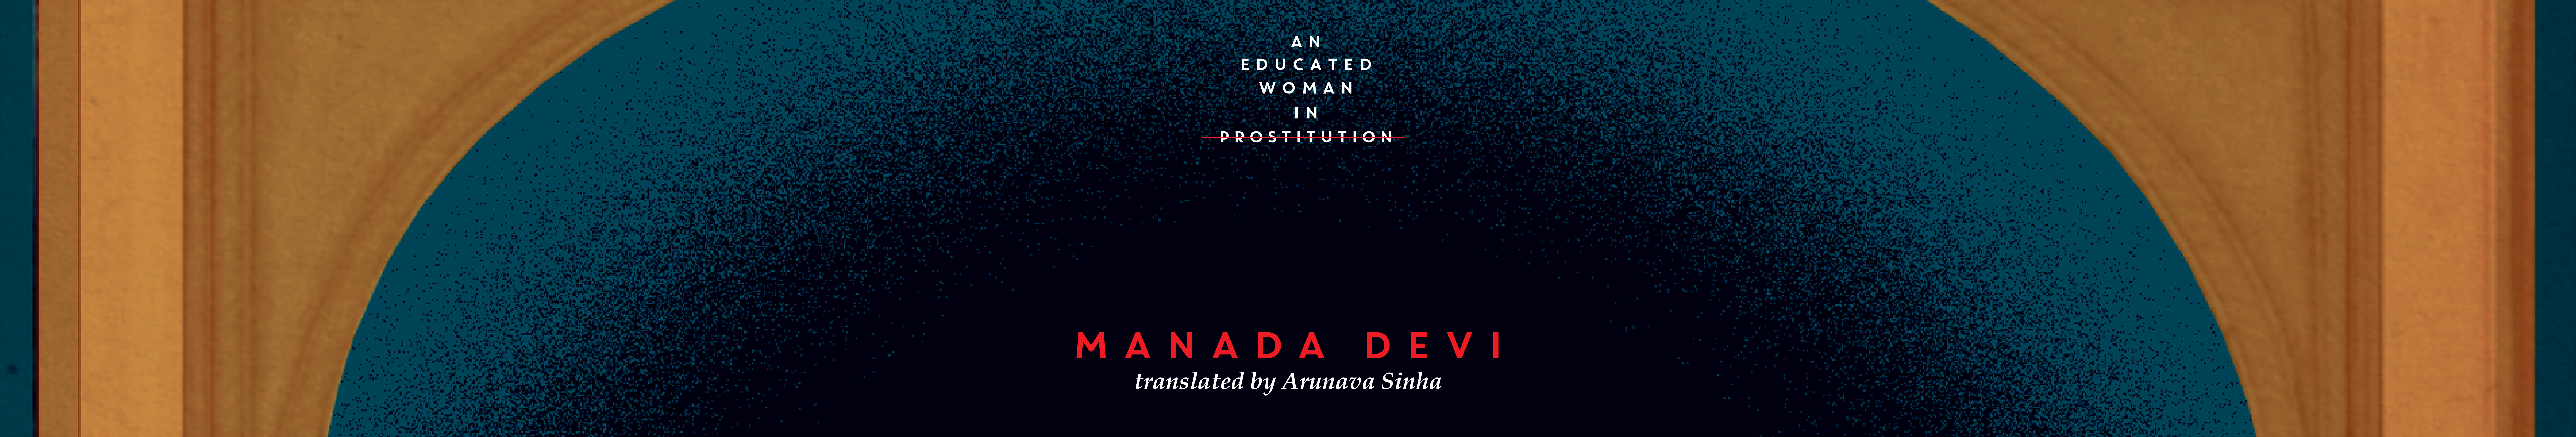 Arunava_An Educated Woman in Prostitution